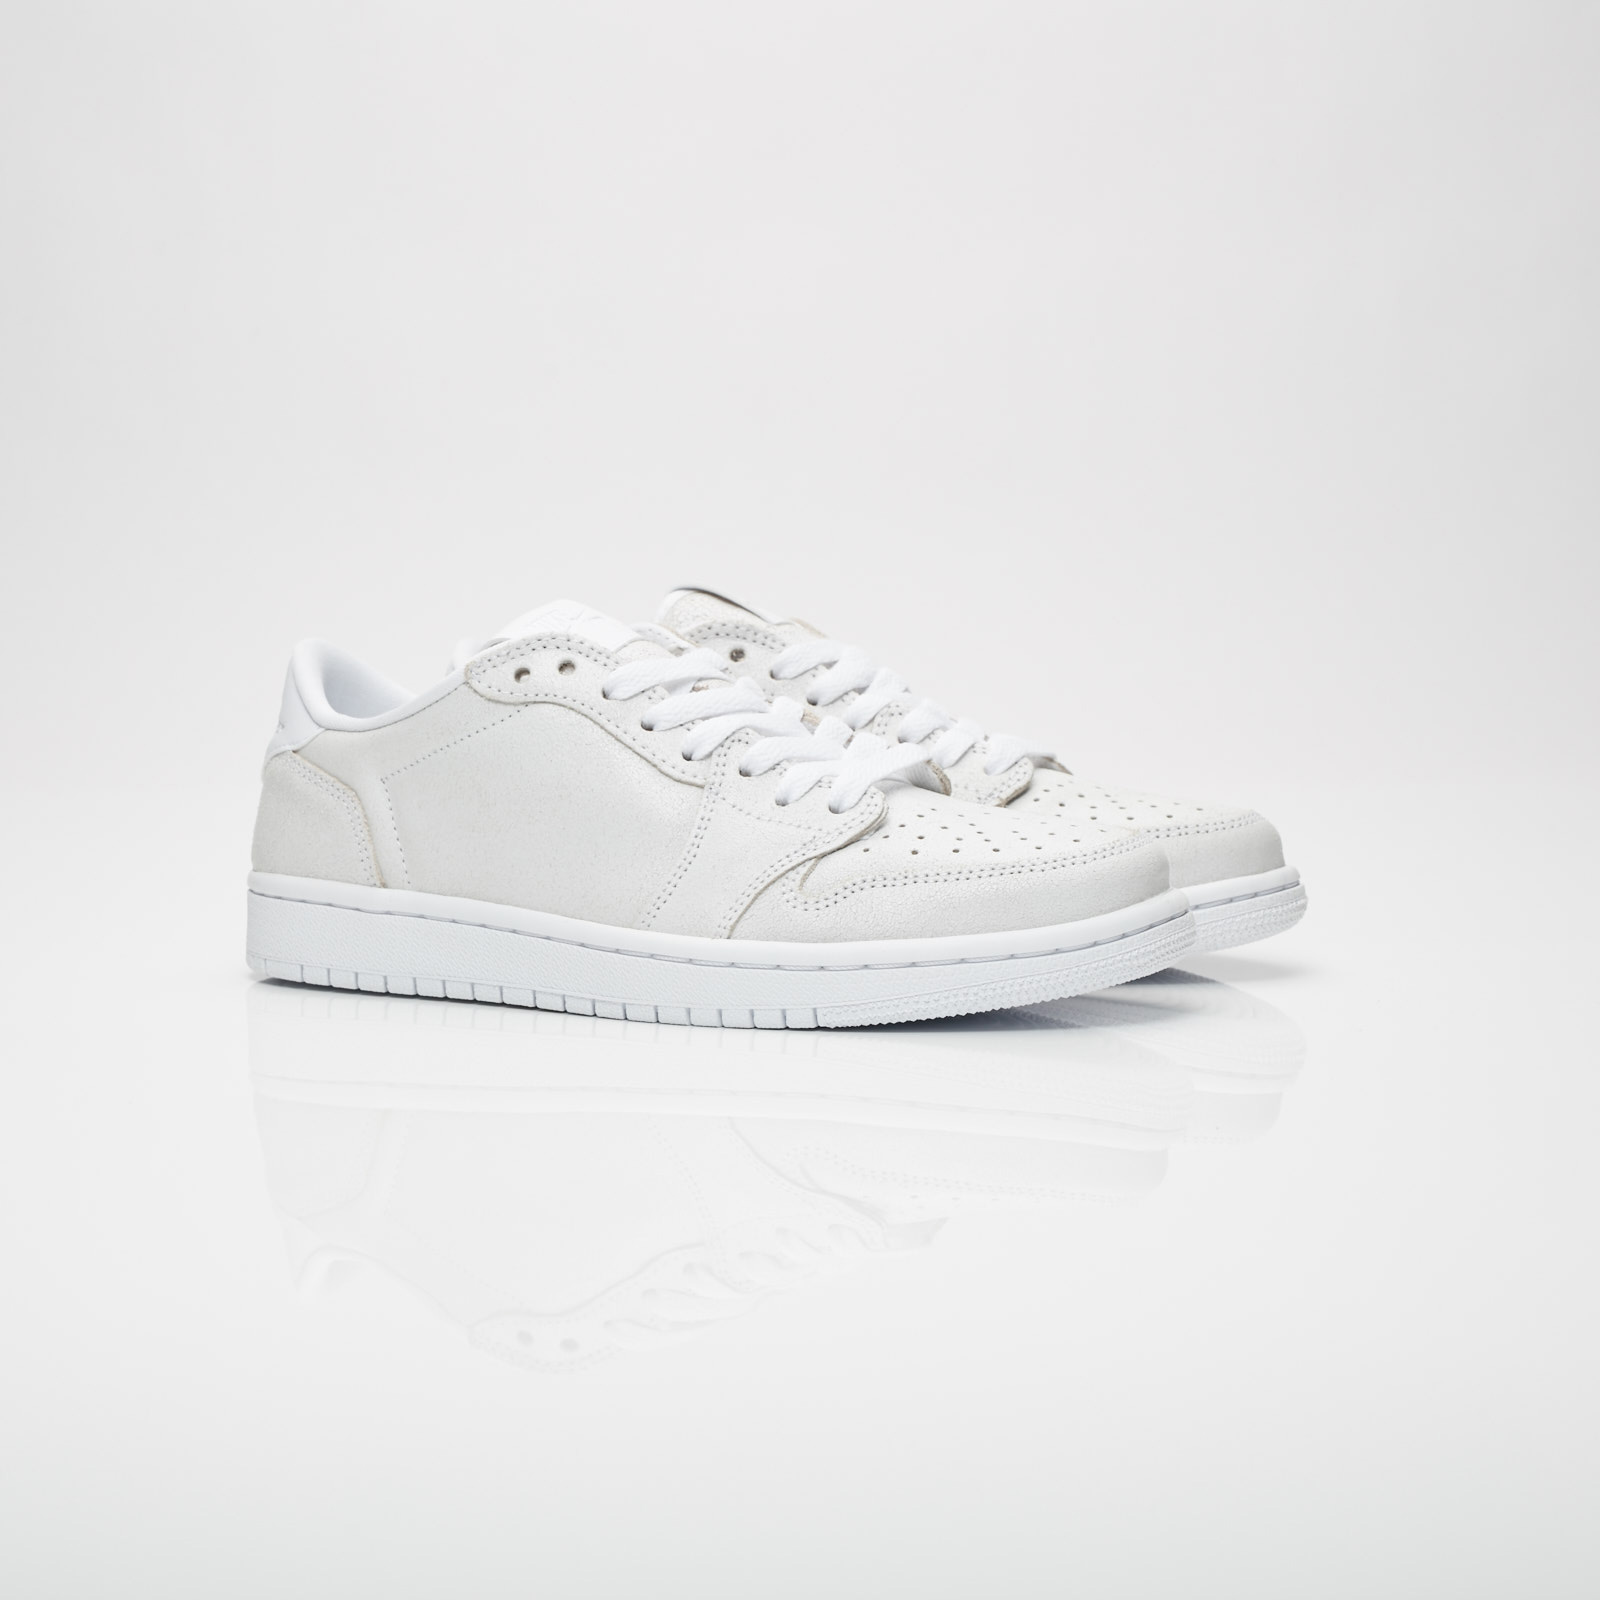 cheaper 2f65f 698ff Jordan Brand Wmns Air Jordan Retro Low NS